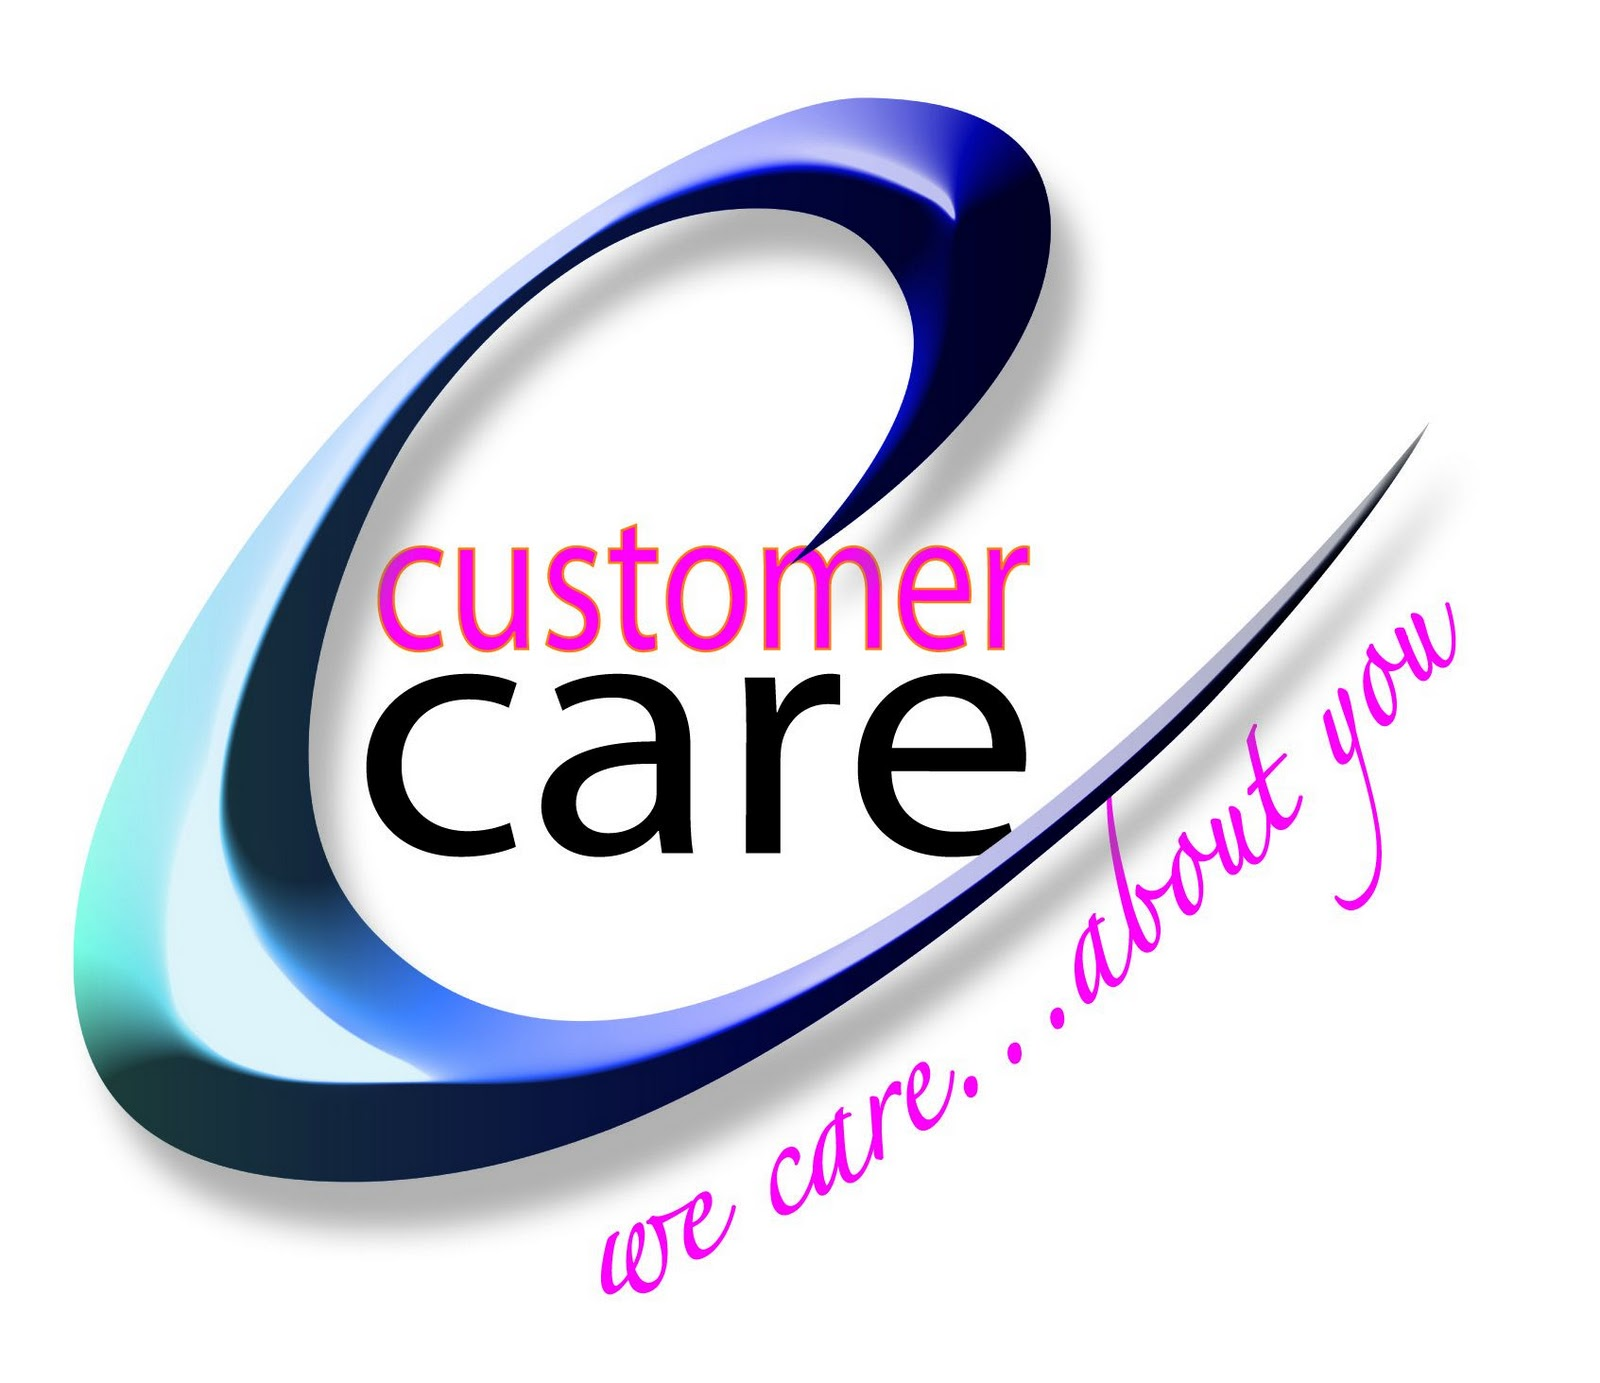 customer service and care Customer care customer care hear from tom karinshak customer guarantee customer guarantee in action contact us we are constantly working to serve you better we know how important great customer service is to you.